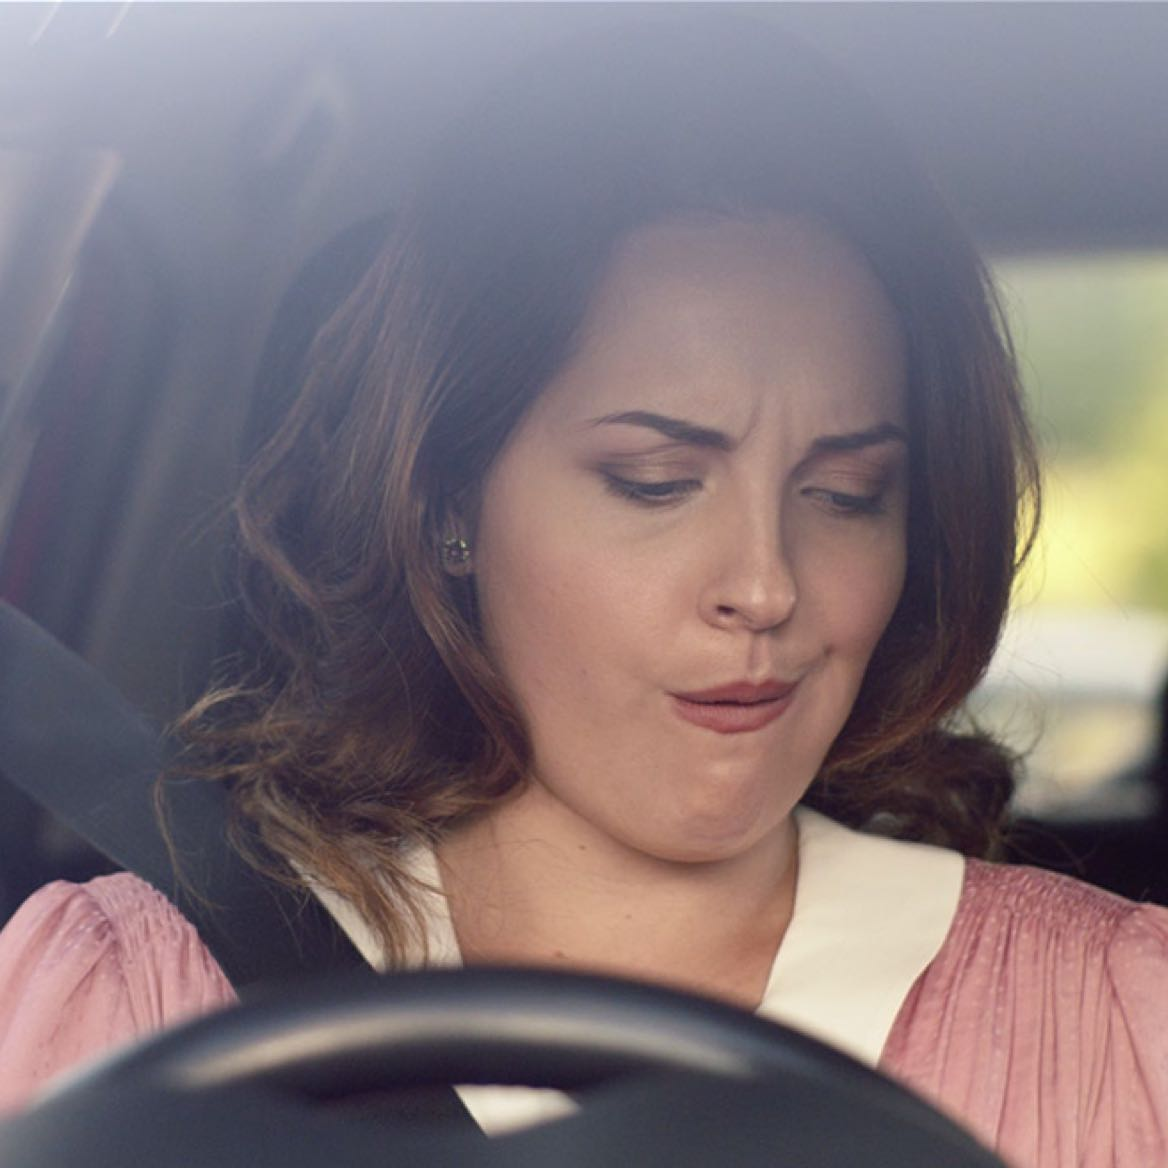 Close up shot of woman sitting in car and pulling a funny face looking down at the centre console